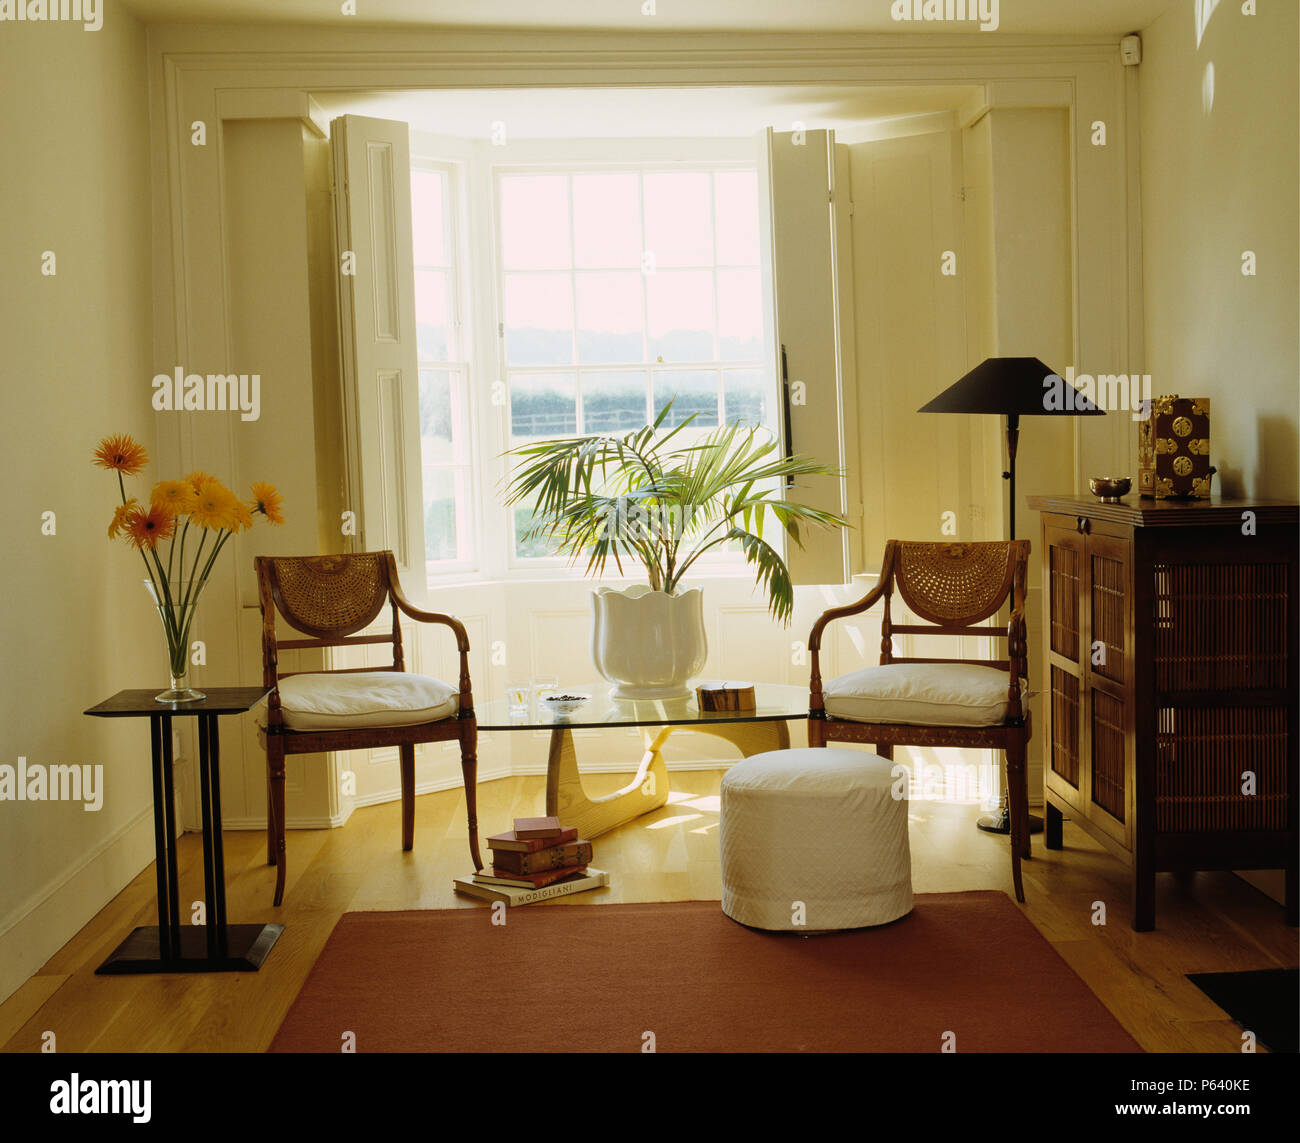 Antique Chairs And Cabinet In Modern Sitting Room With A